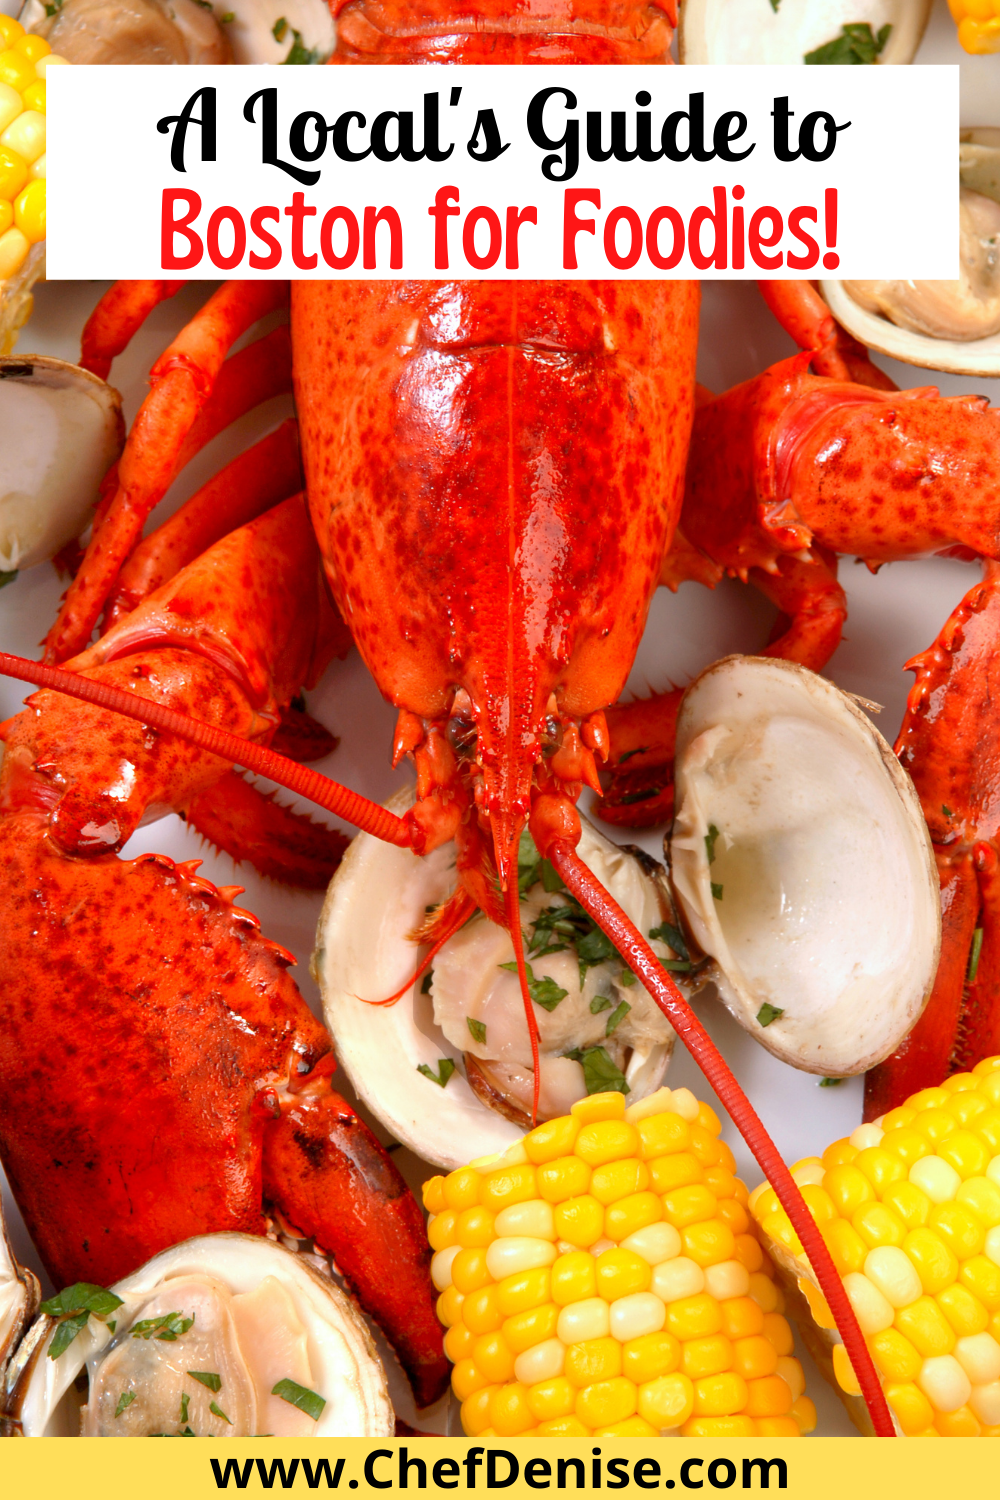 Pin for Guide to Boston for Foodies